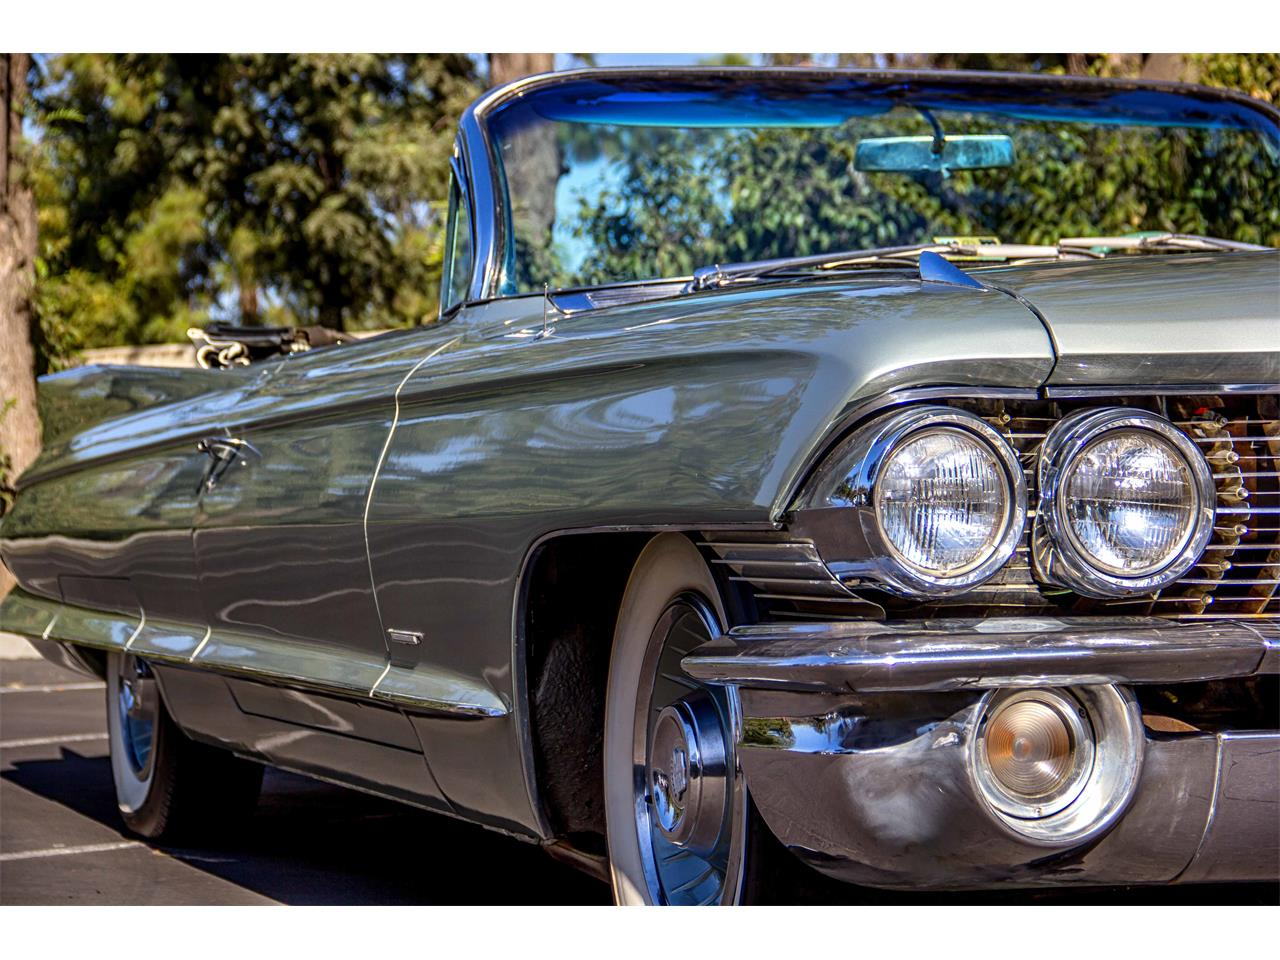 Large Picture of 1961 Cadillac DeVille - $55,500.00 Offered by a Private Seller - K2GI